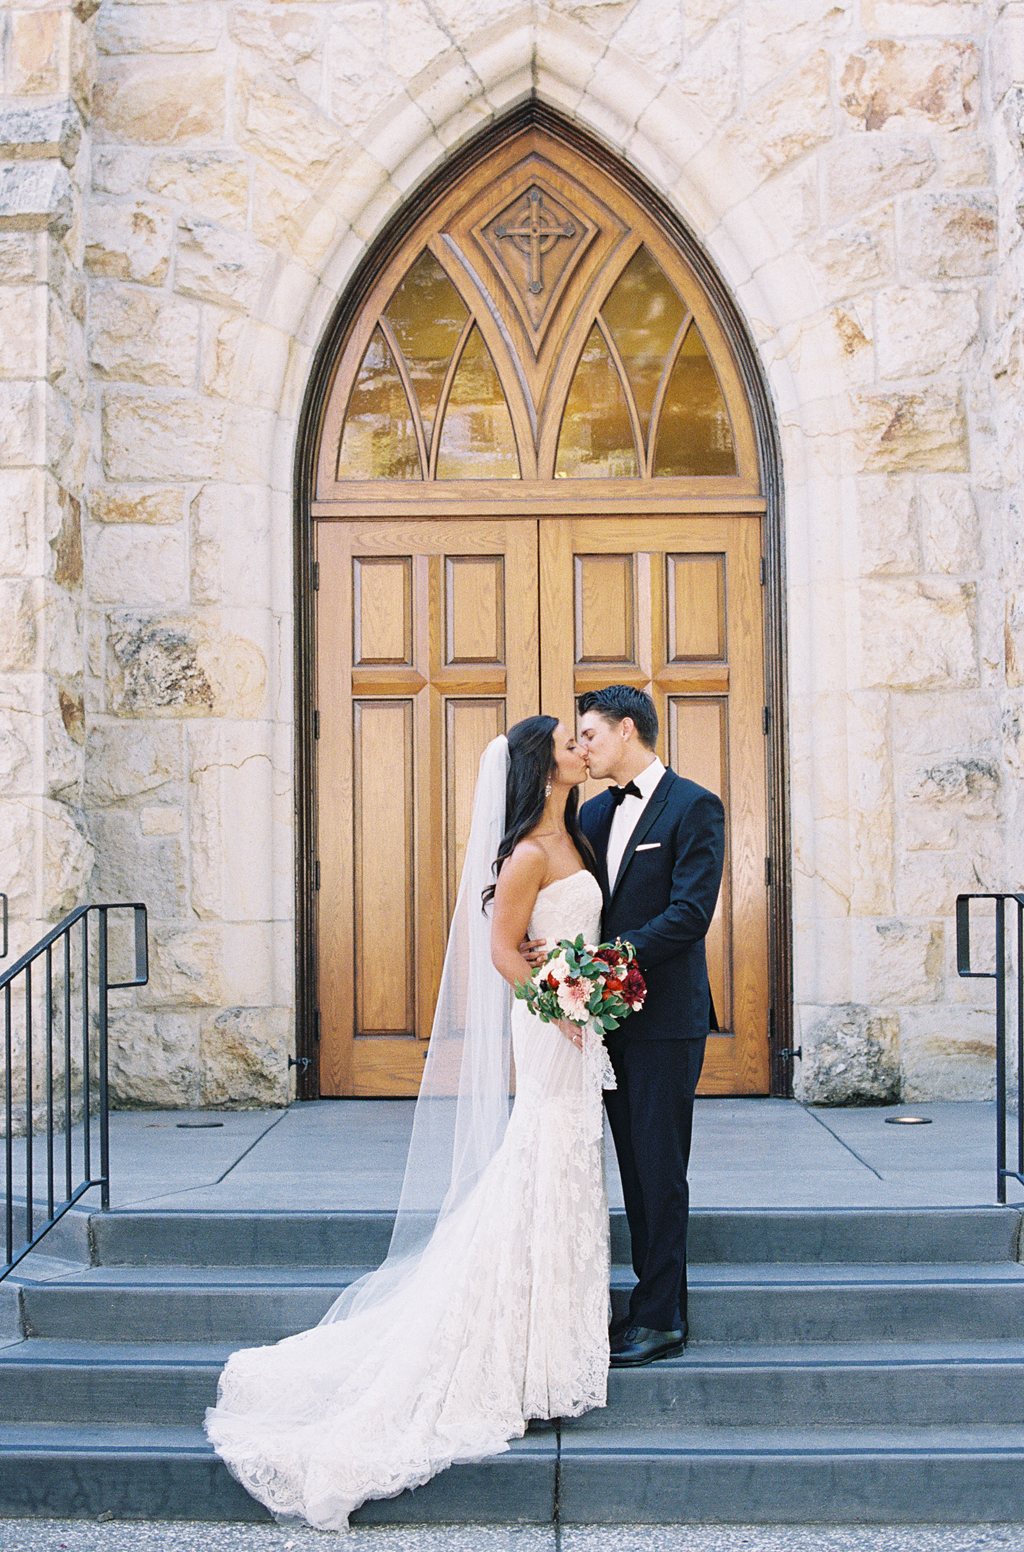 a bride and groom pose in front of a church in St. Helena, California.